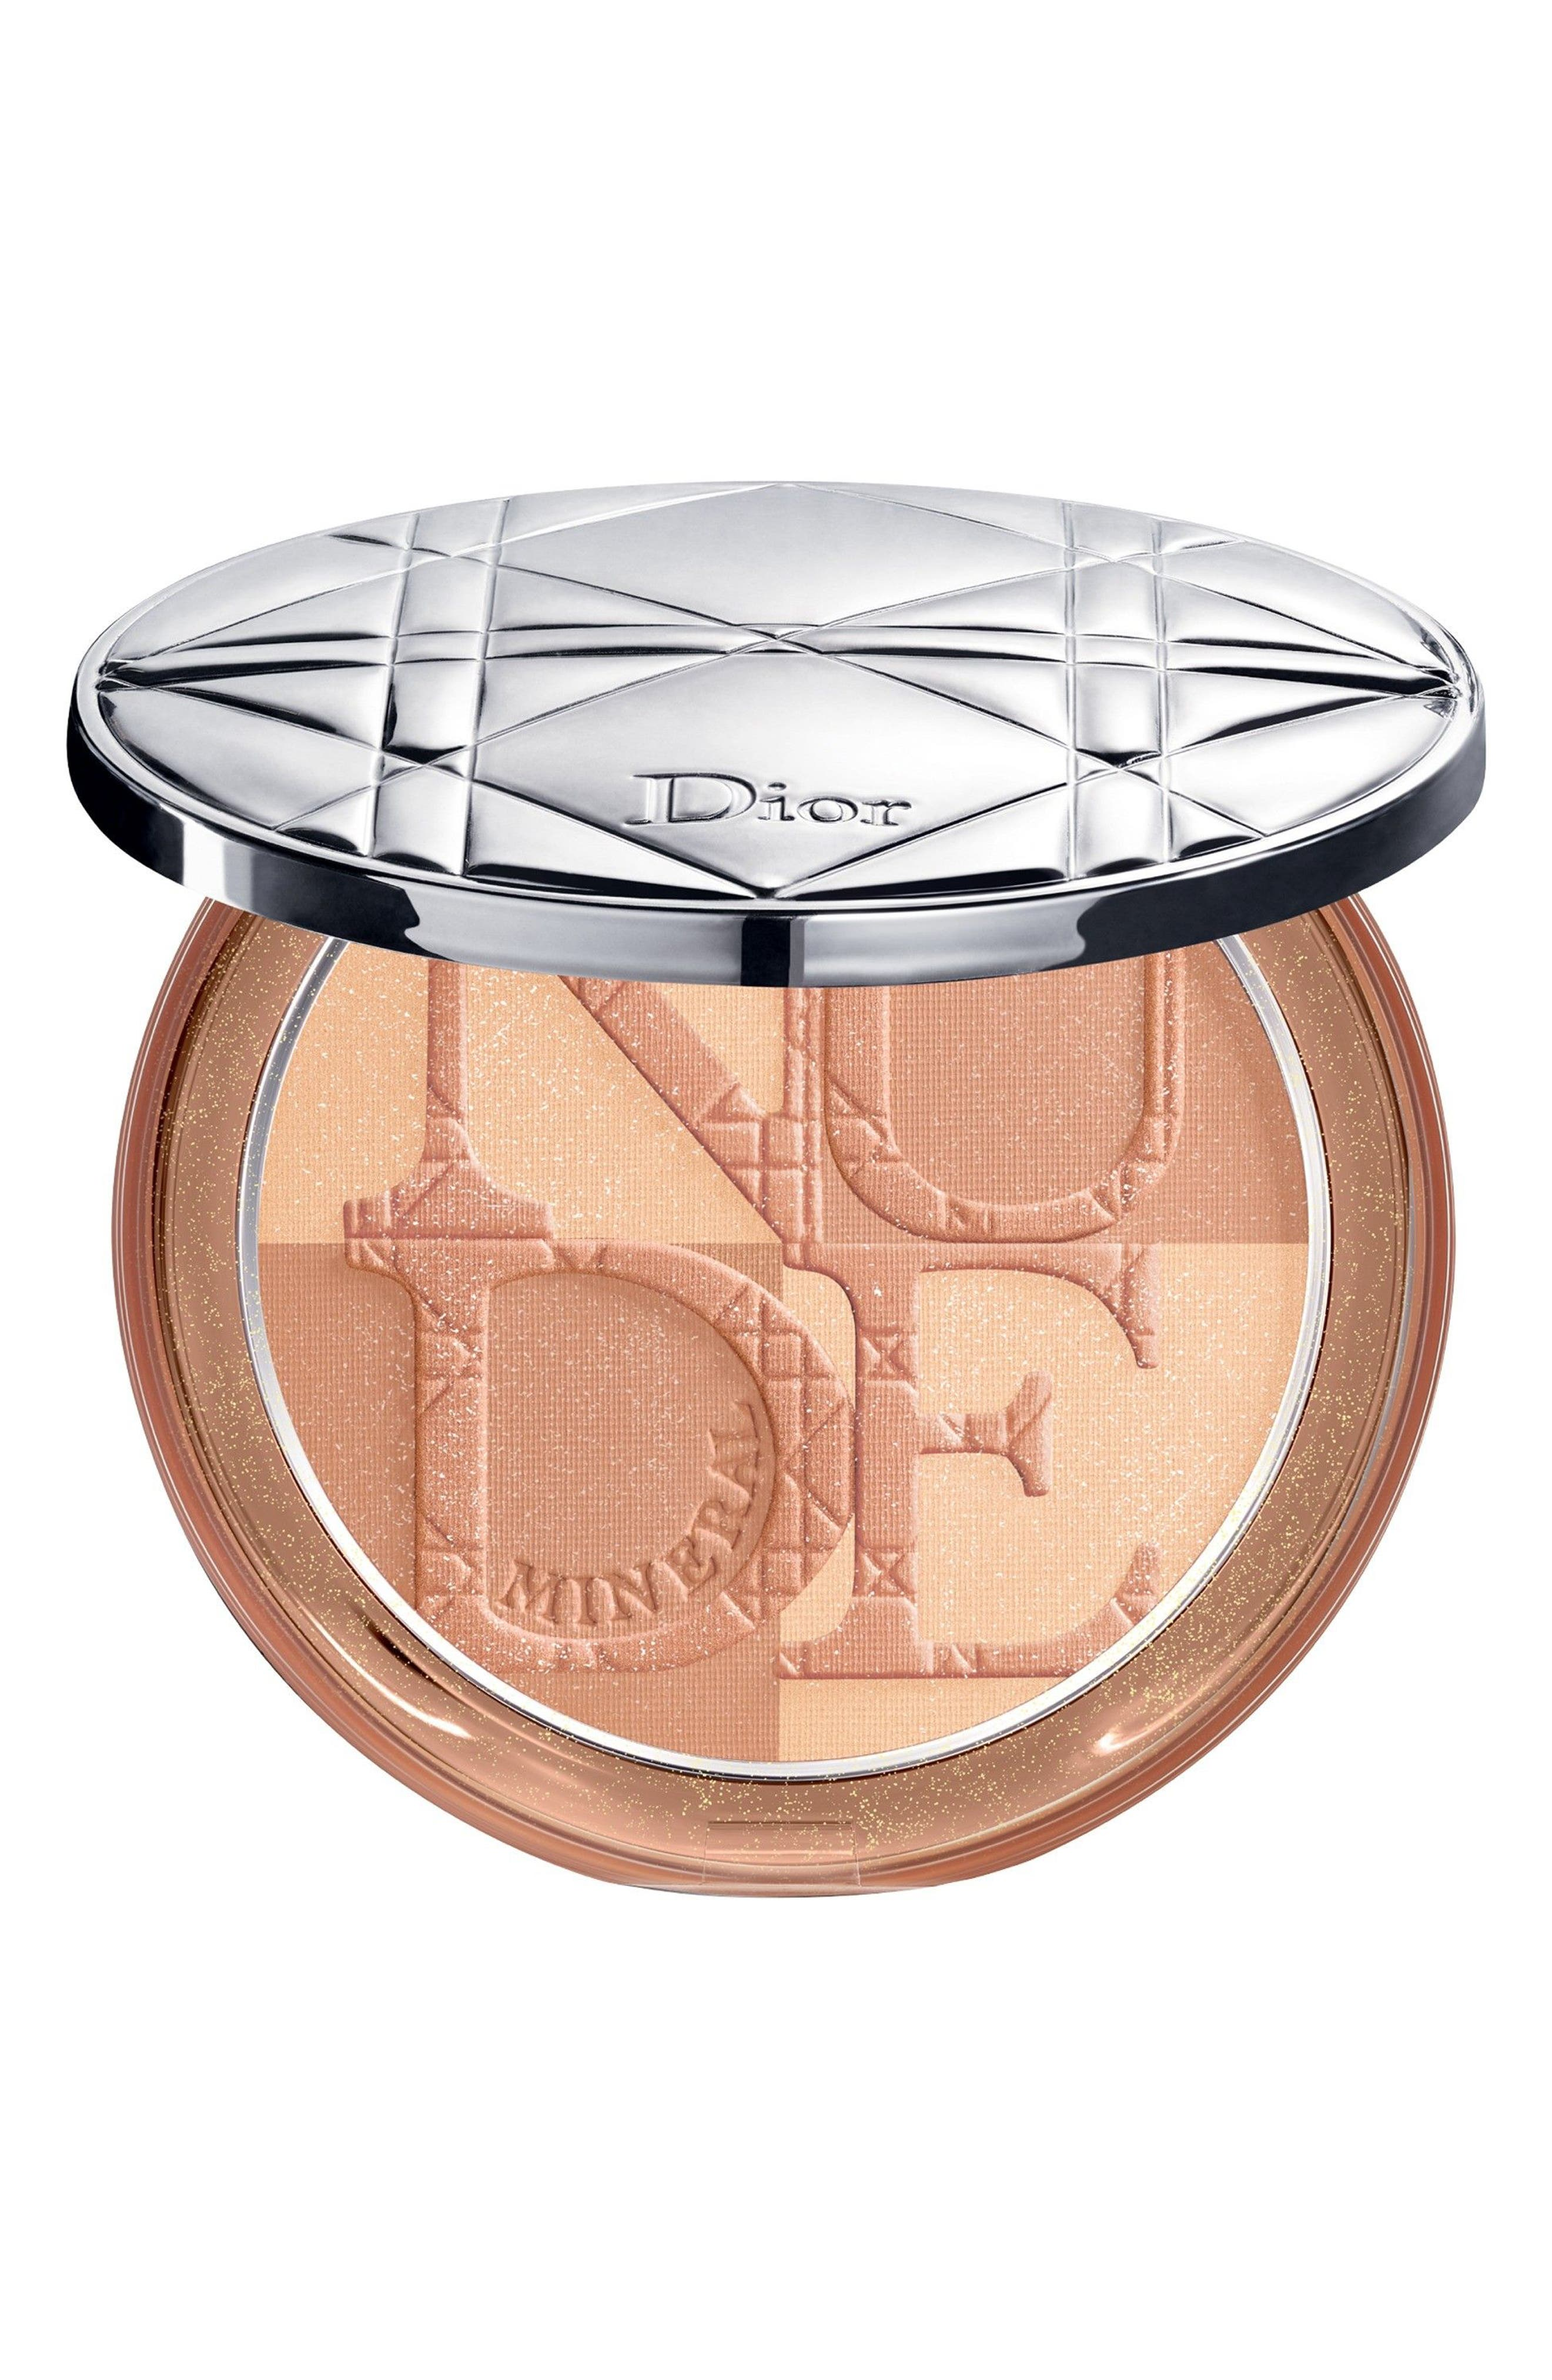 DIOR, Diorskin Mineral Nude Bronze Powder, Main thumbnail 1, color, 001 SOFT SUNRISE